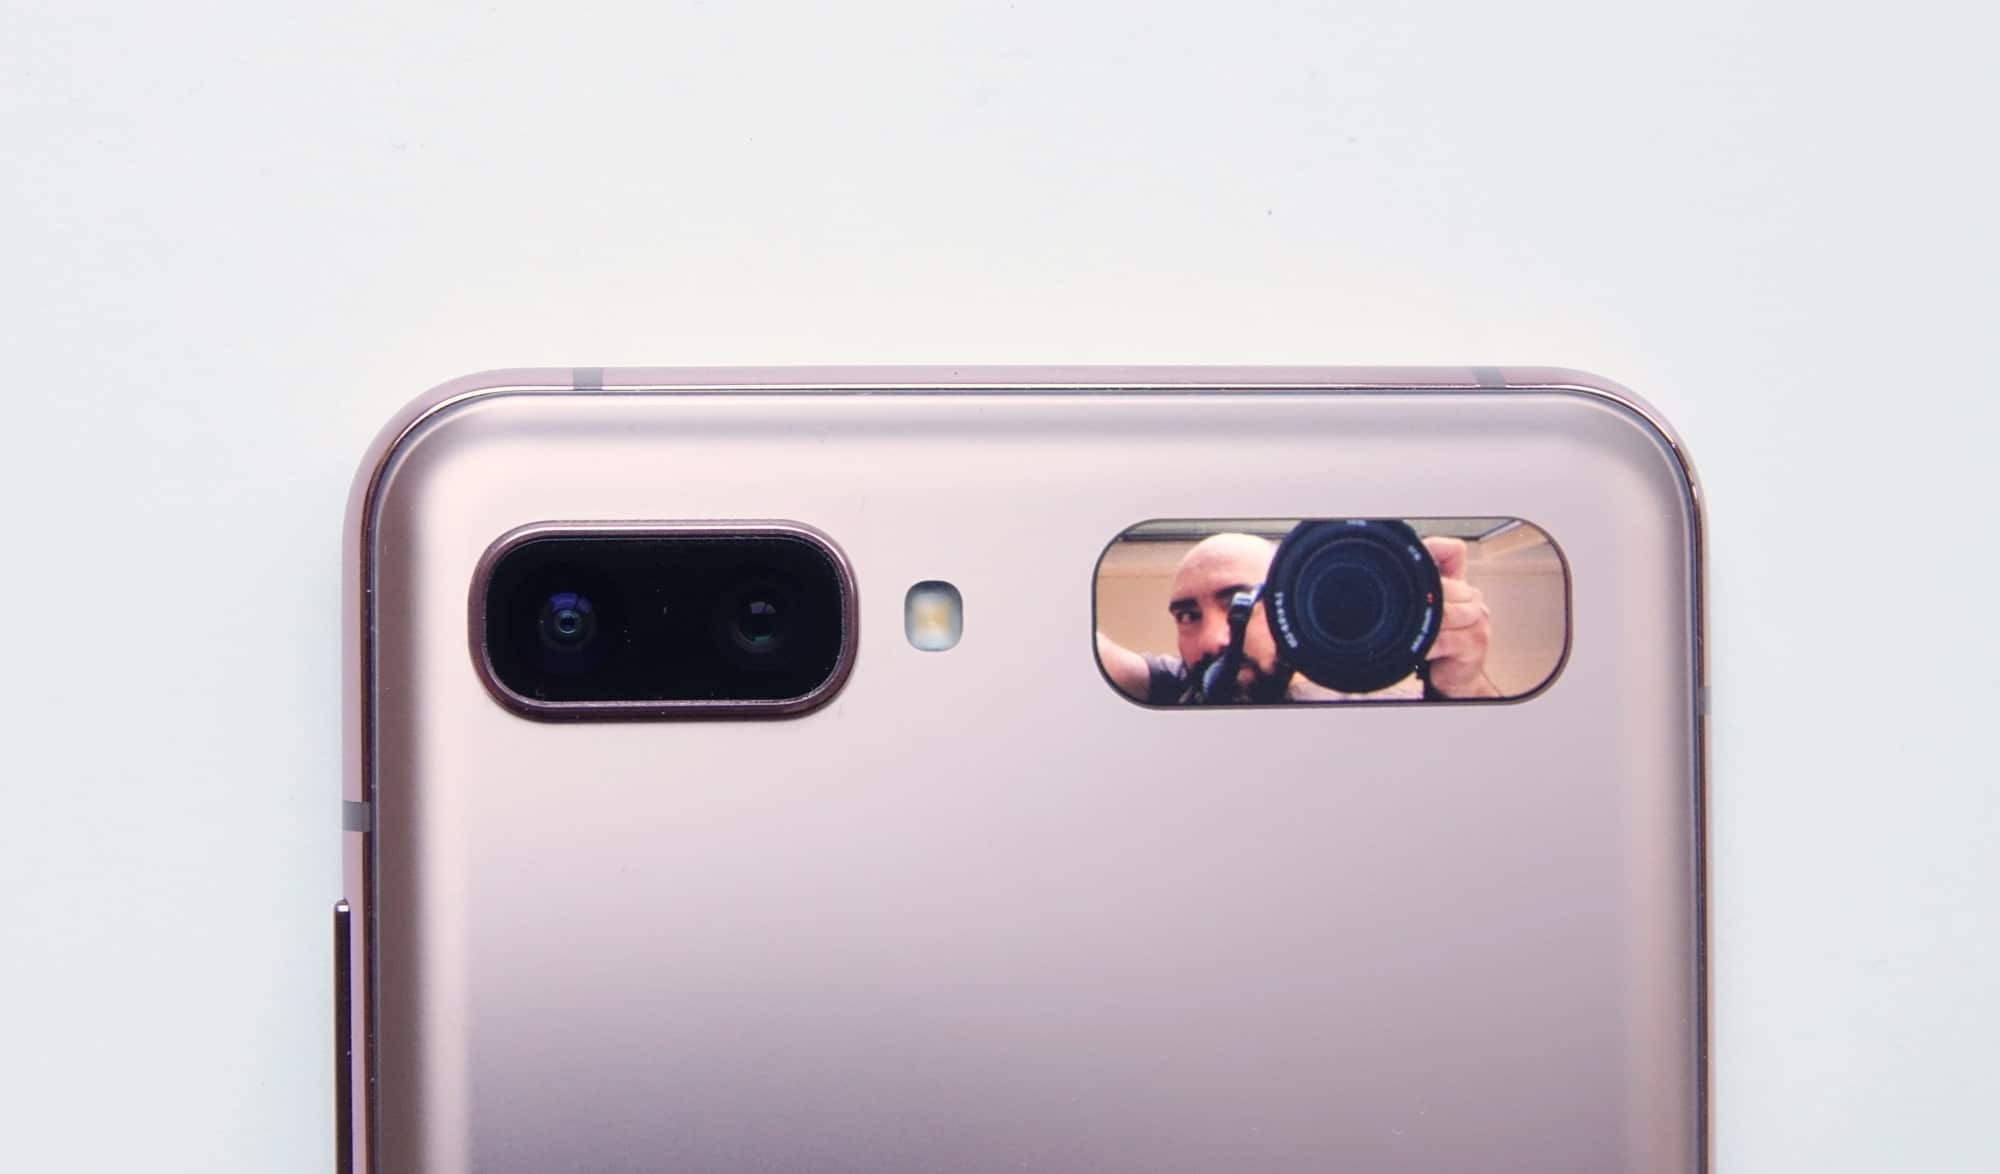 The 1.1 inch rear screen being used for selfies with the standard camera.